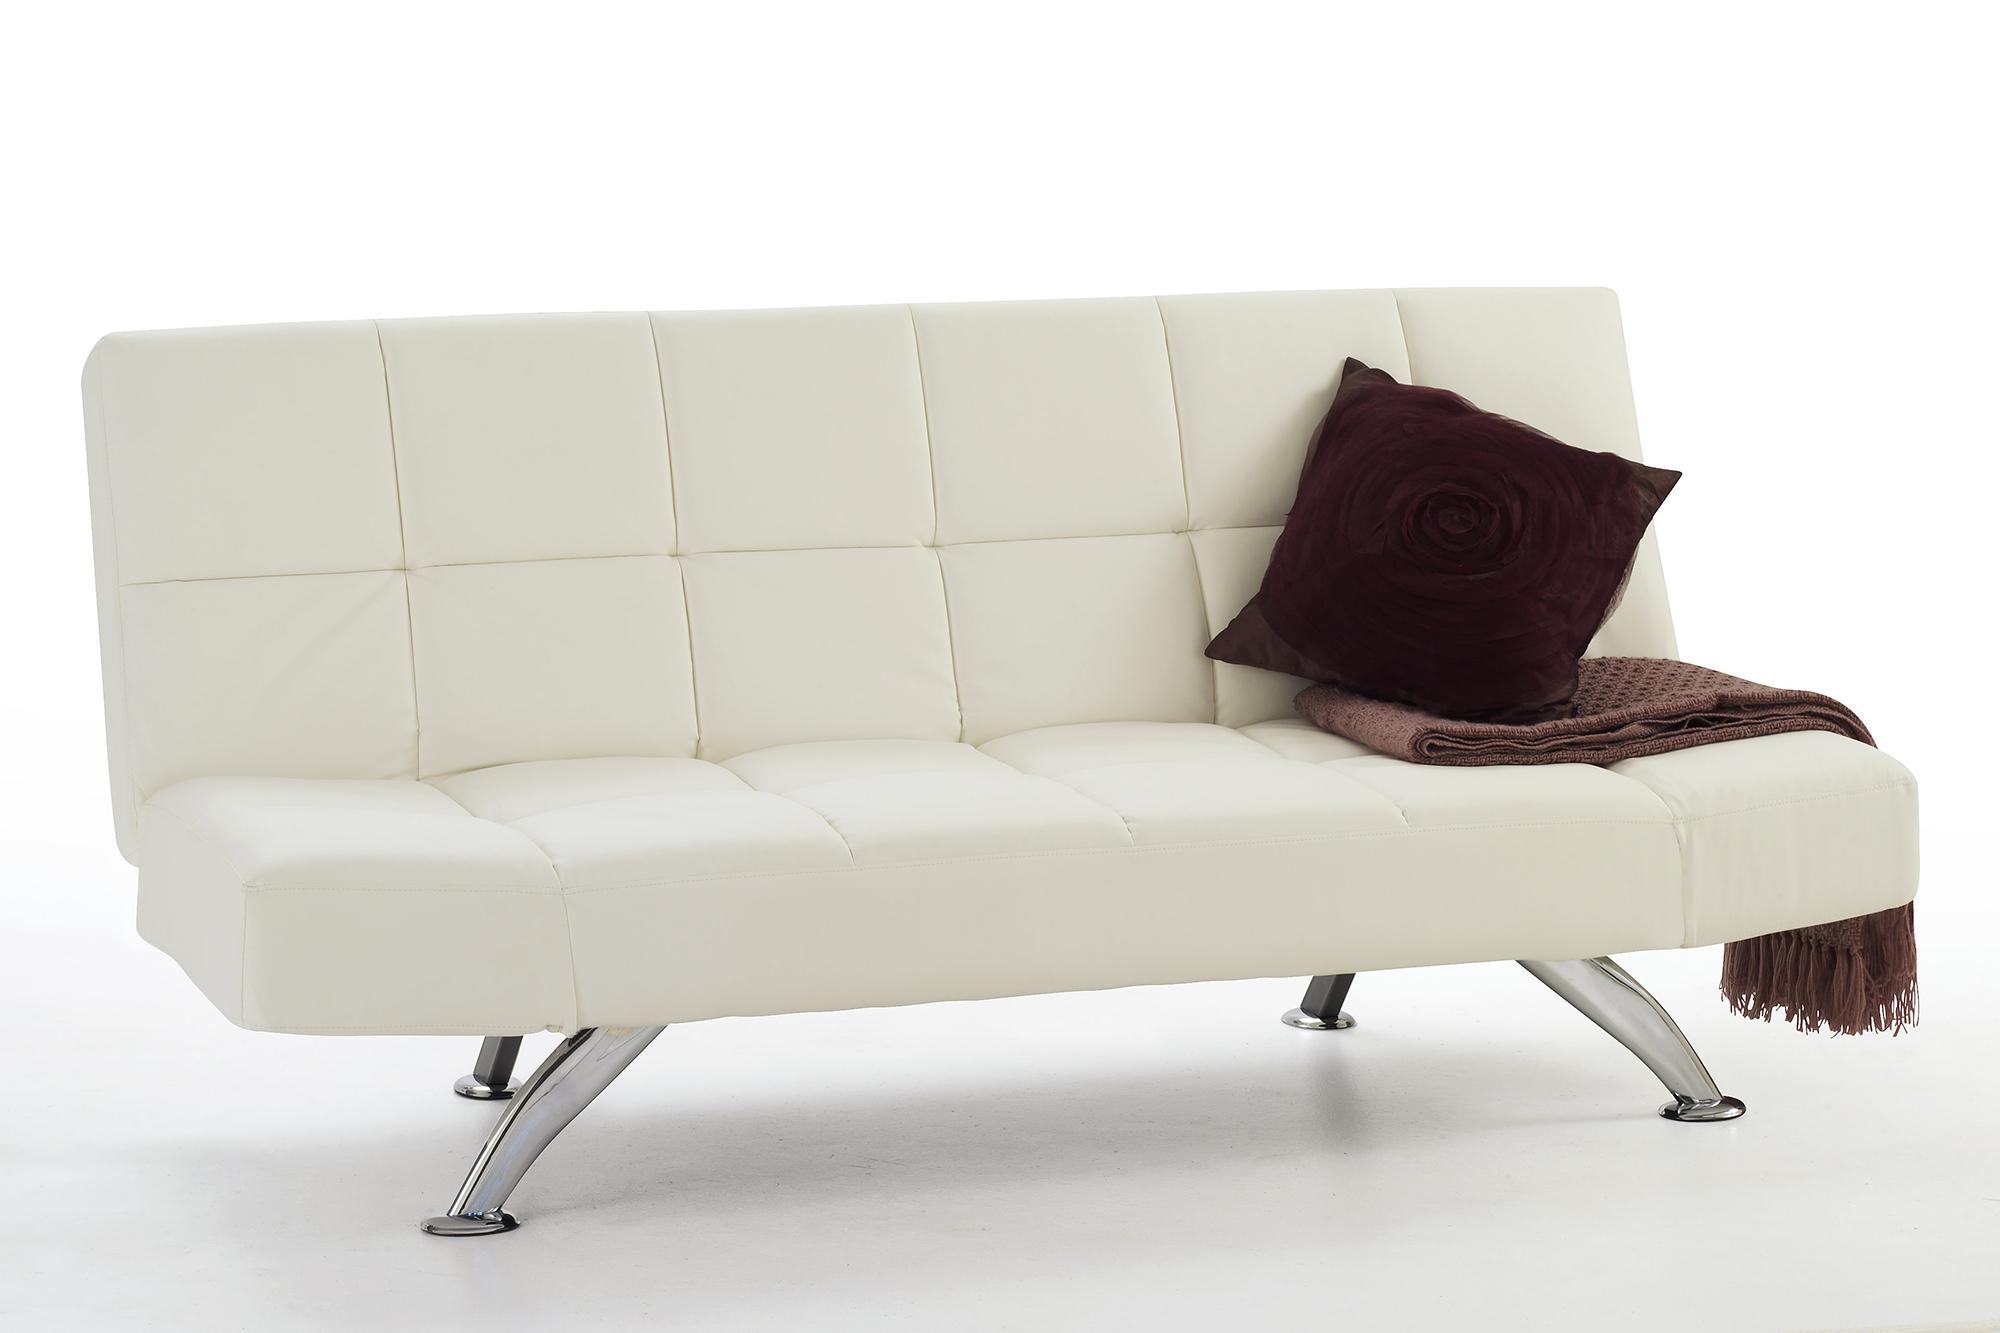 durable sofa bed white leather ebay small shop for cheap sofas and save online